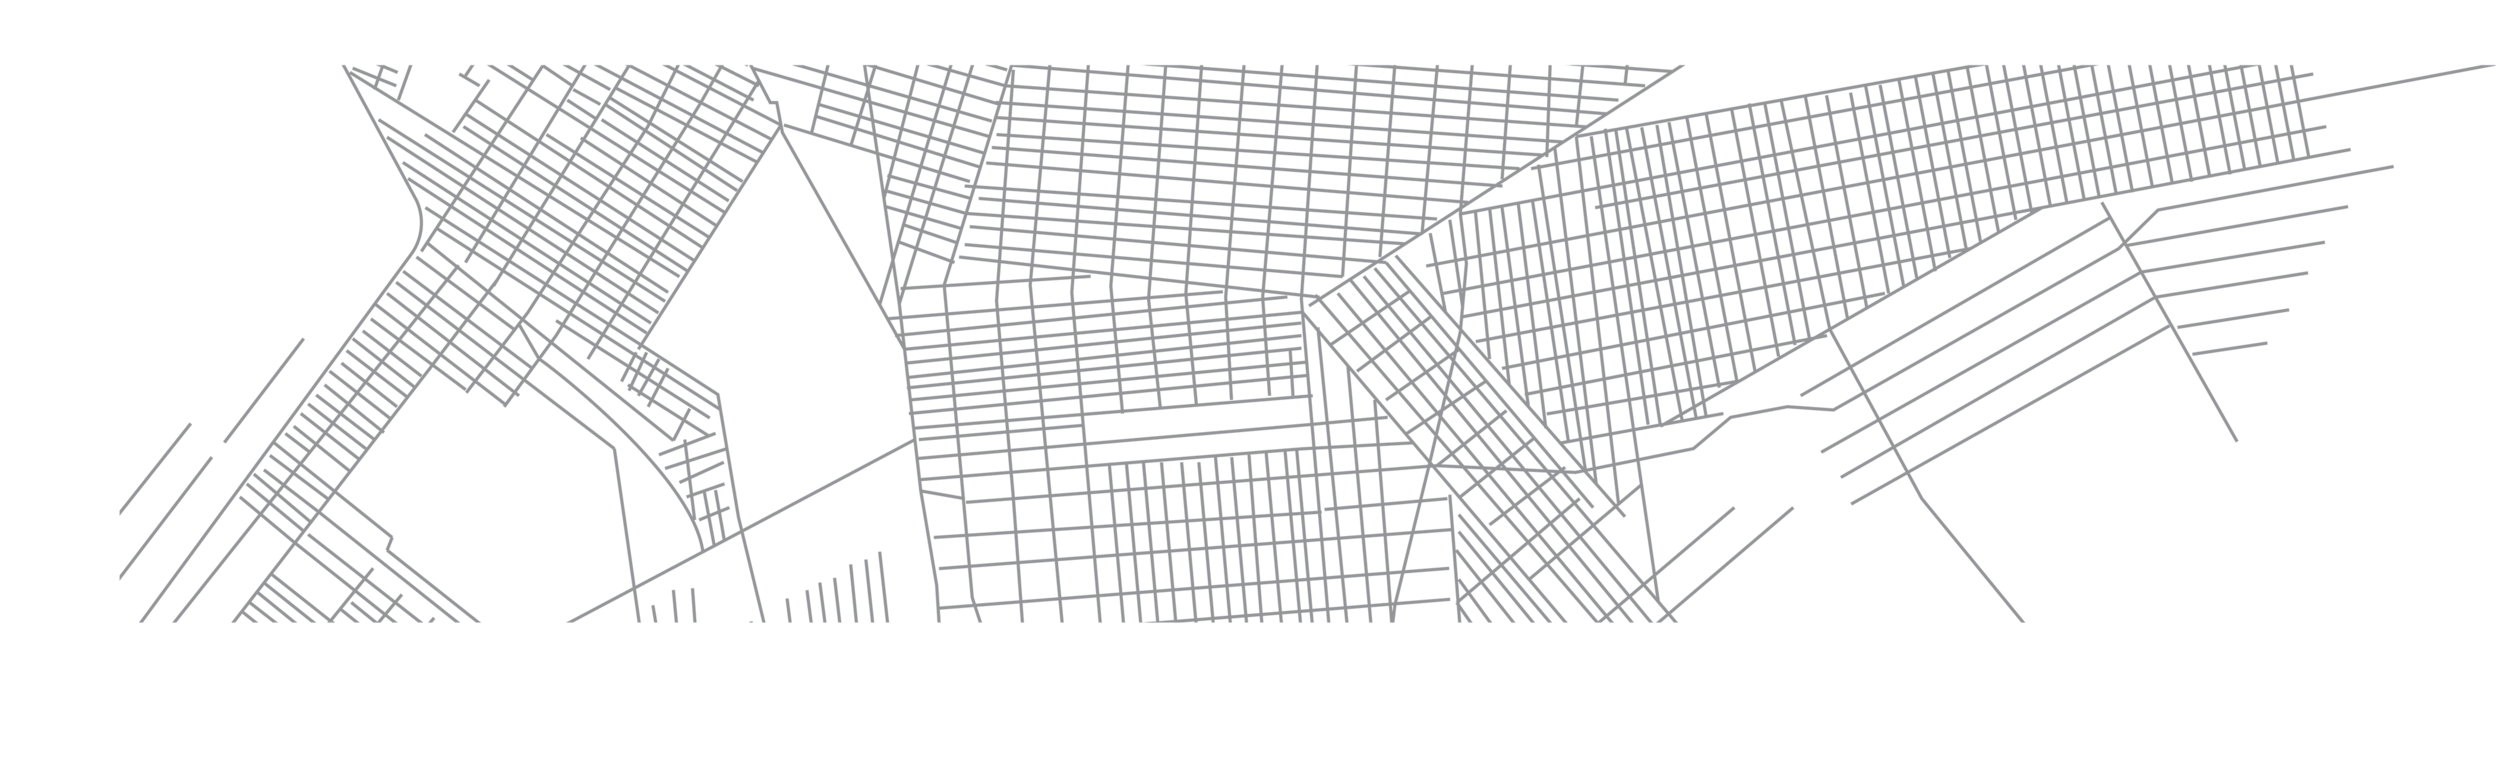 2_14 BANNER MAP STREET GRID ONLY 150DPI copy.png